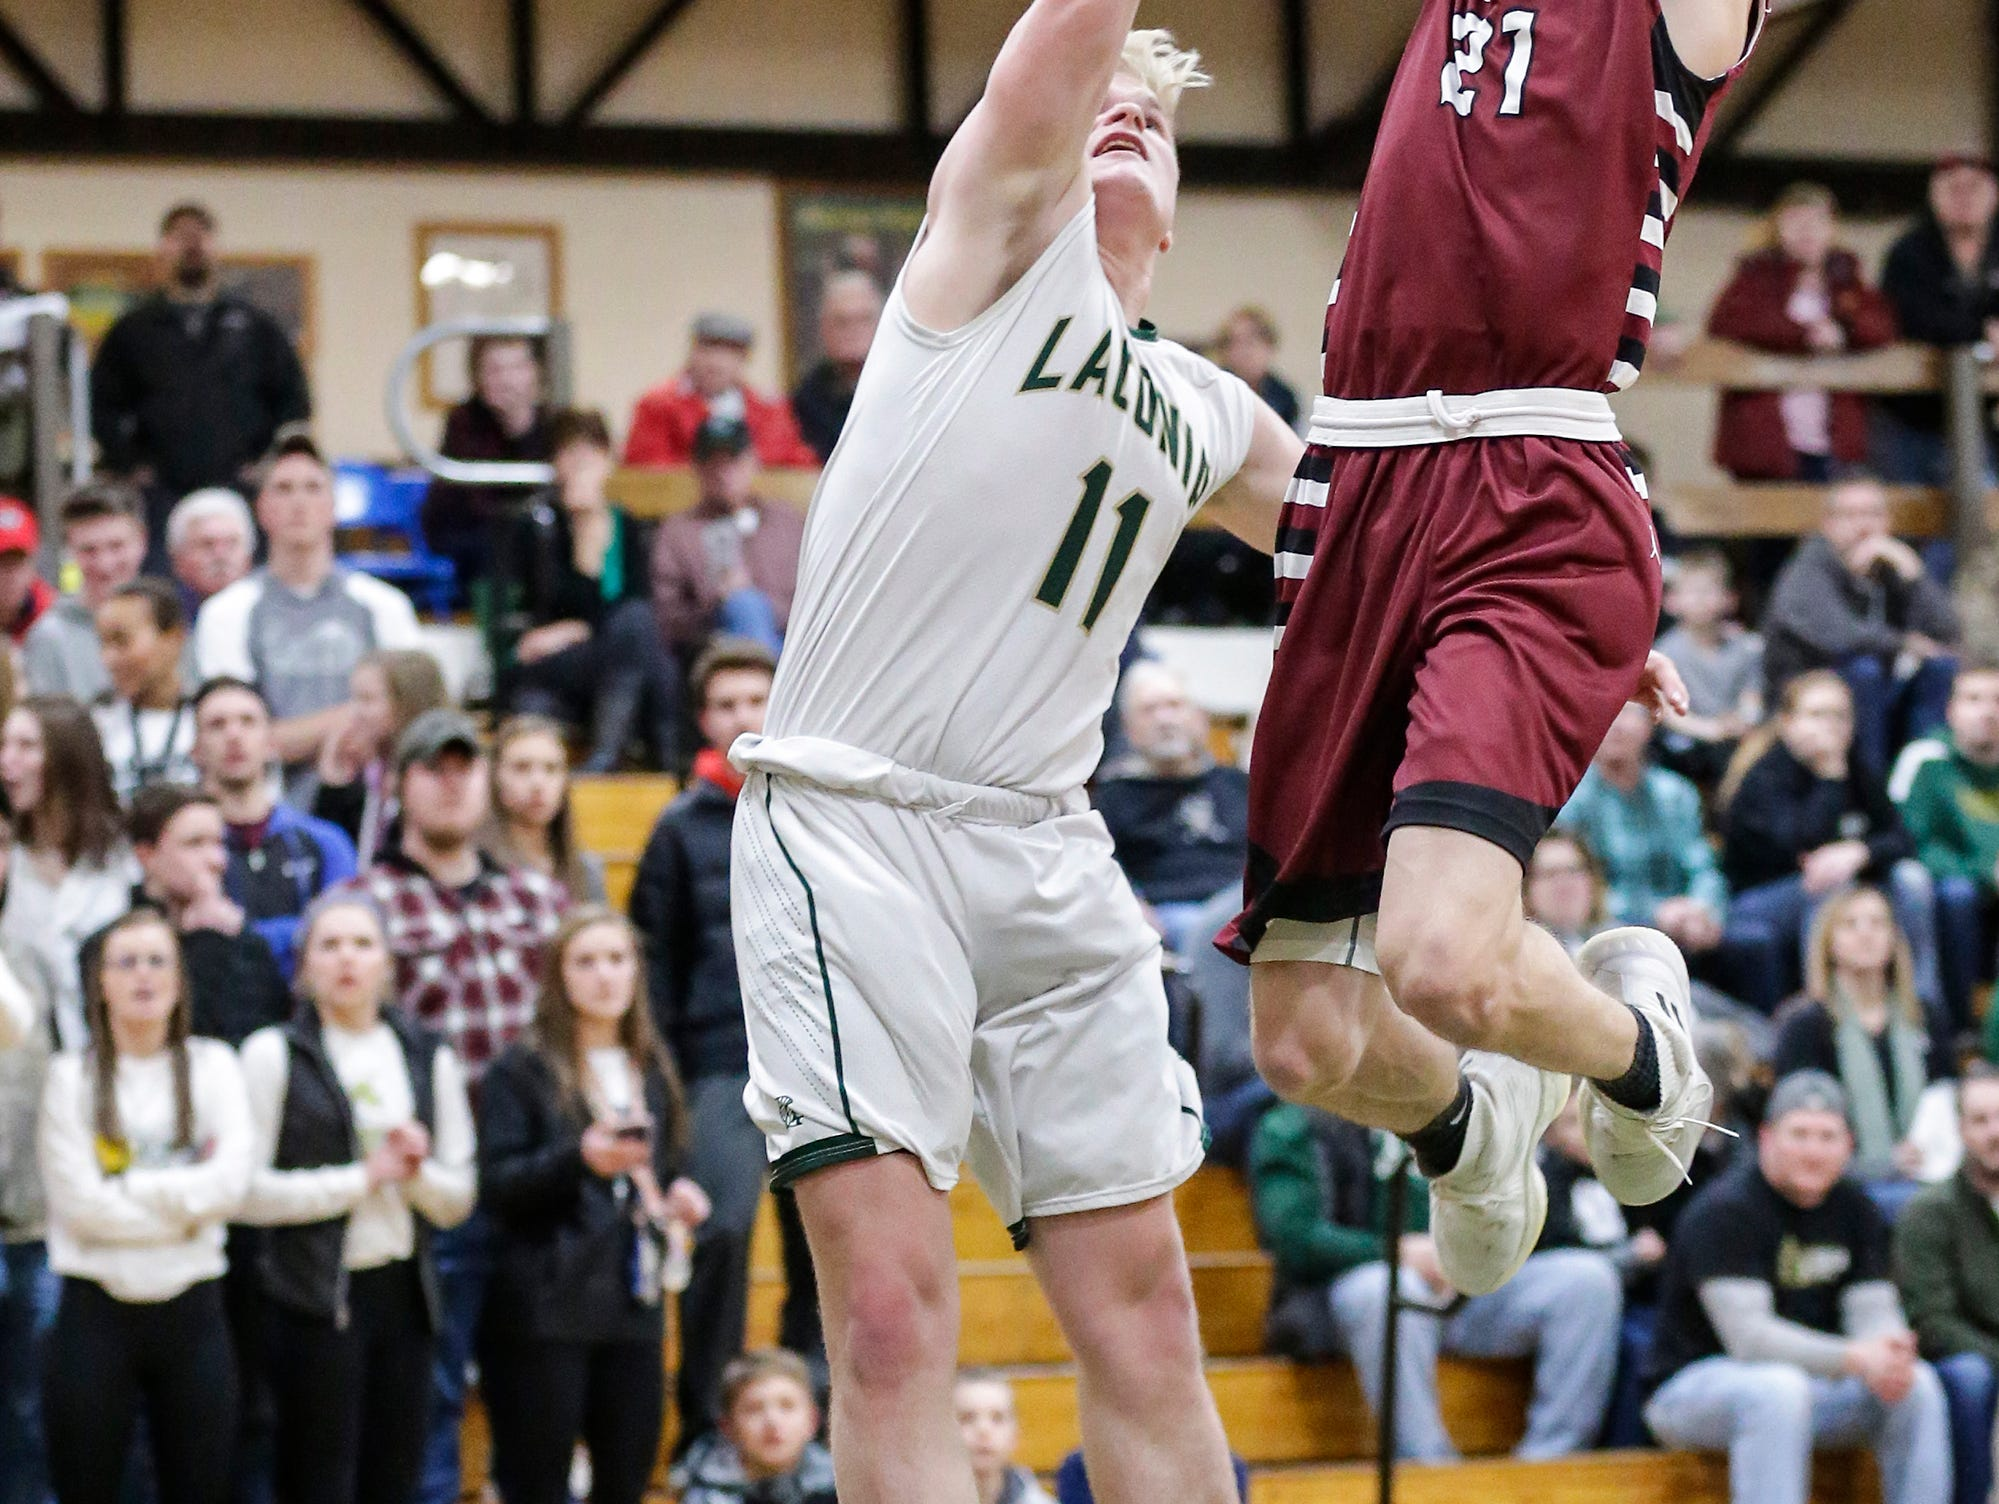 Laconia High School boys basketball's Eli Leonard fouls Mayville High School's Jackson Mittelstadt during their game Friday, January 25, 2019 in Rosendale. Laconia won the game 80-54. Doug Raflik/USA TODAY NETWORK-Wisconsin